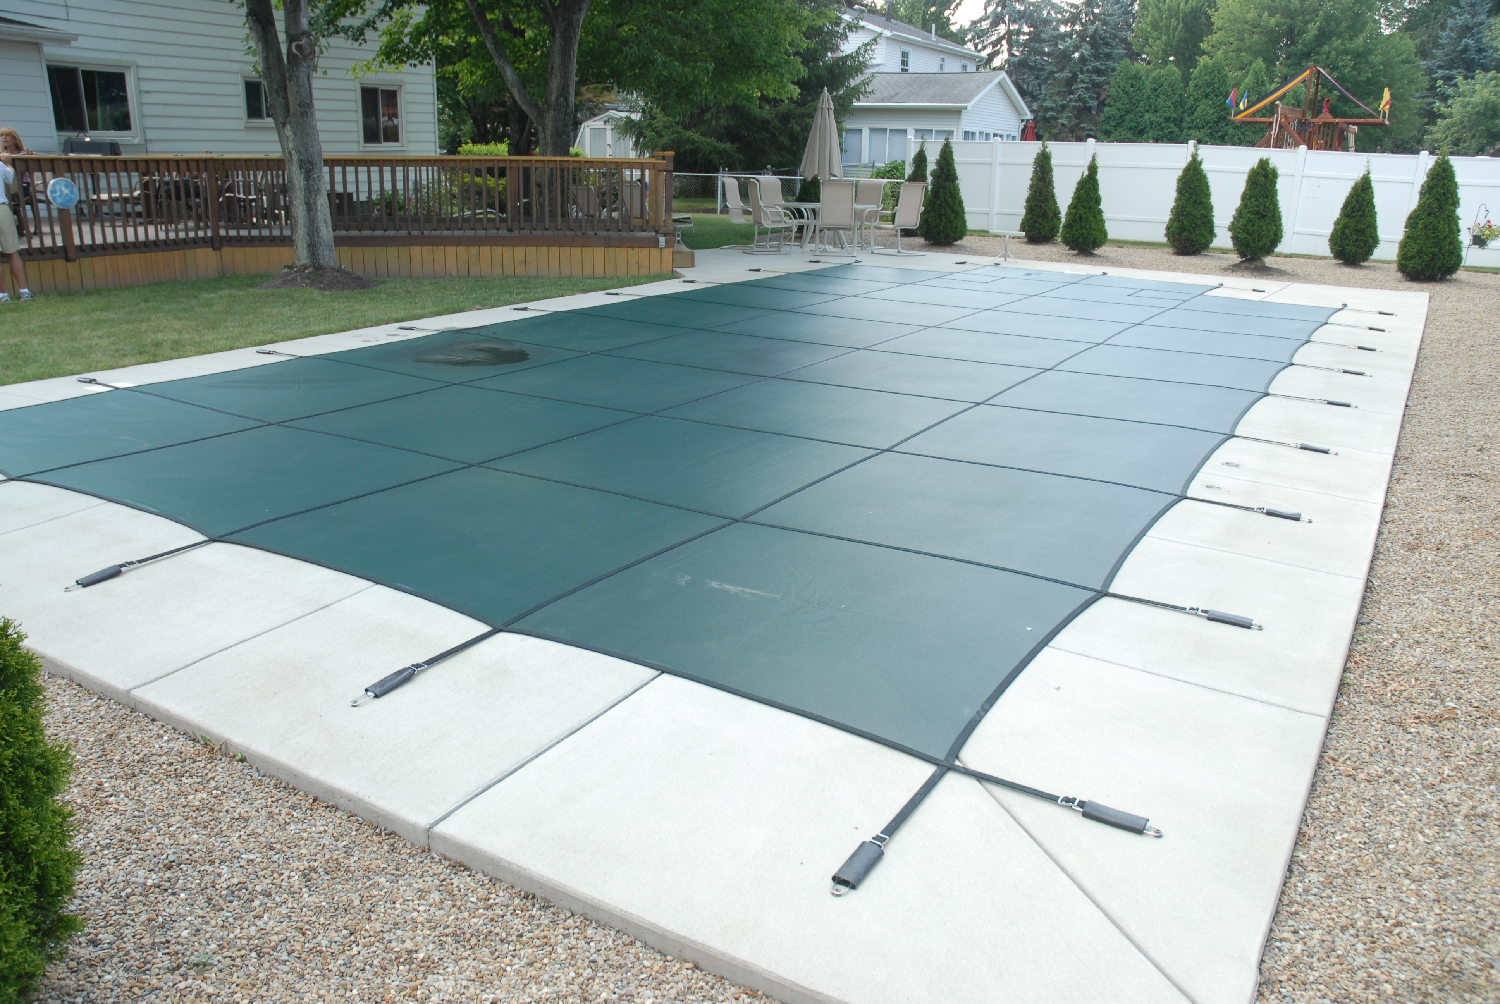 Pool Safety Covers by Pool Guard Pensacola, FL